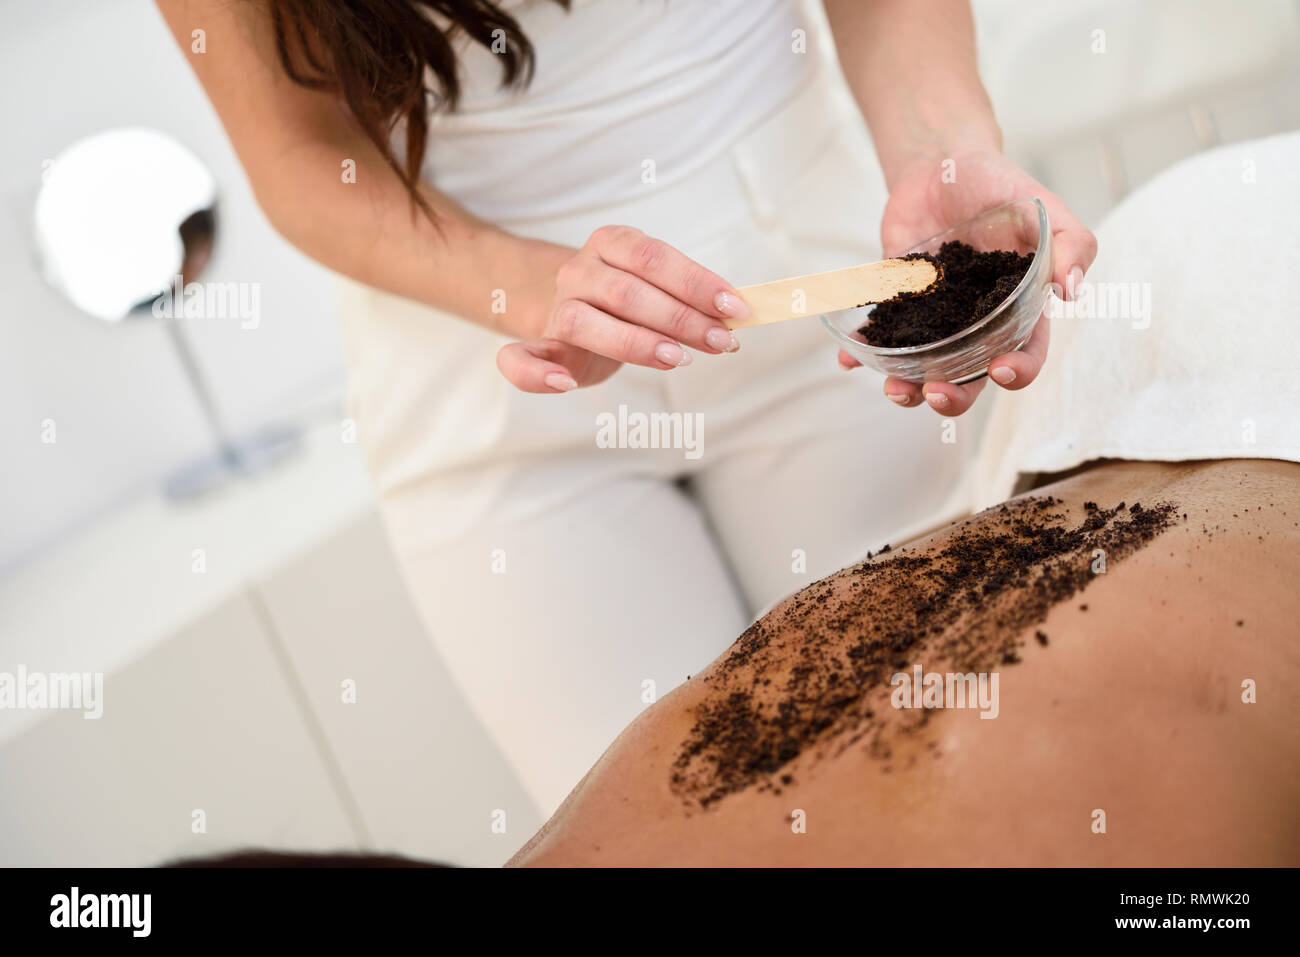 Woman cleans skin of the body with coffee scrub in spa wellness center.  - Stock Image